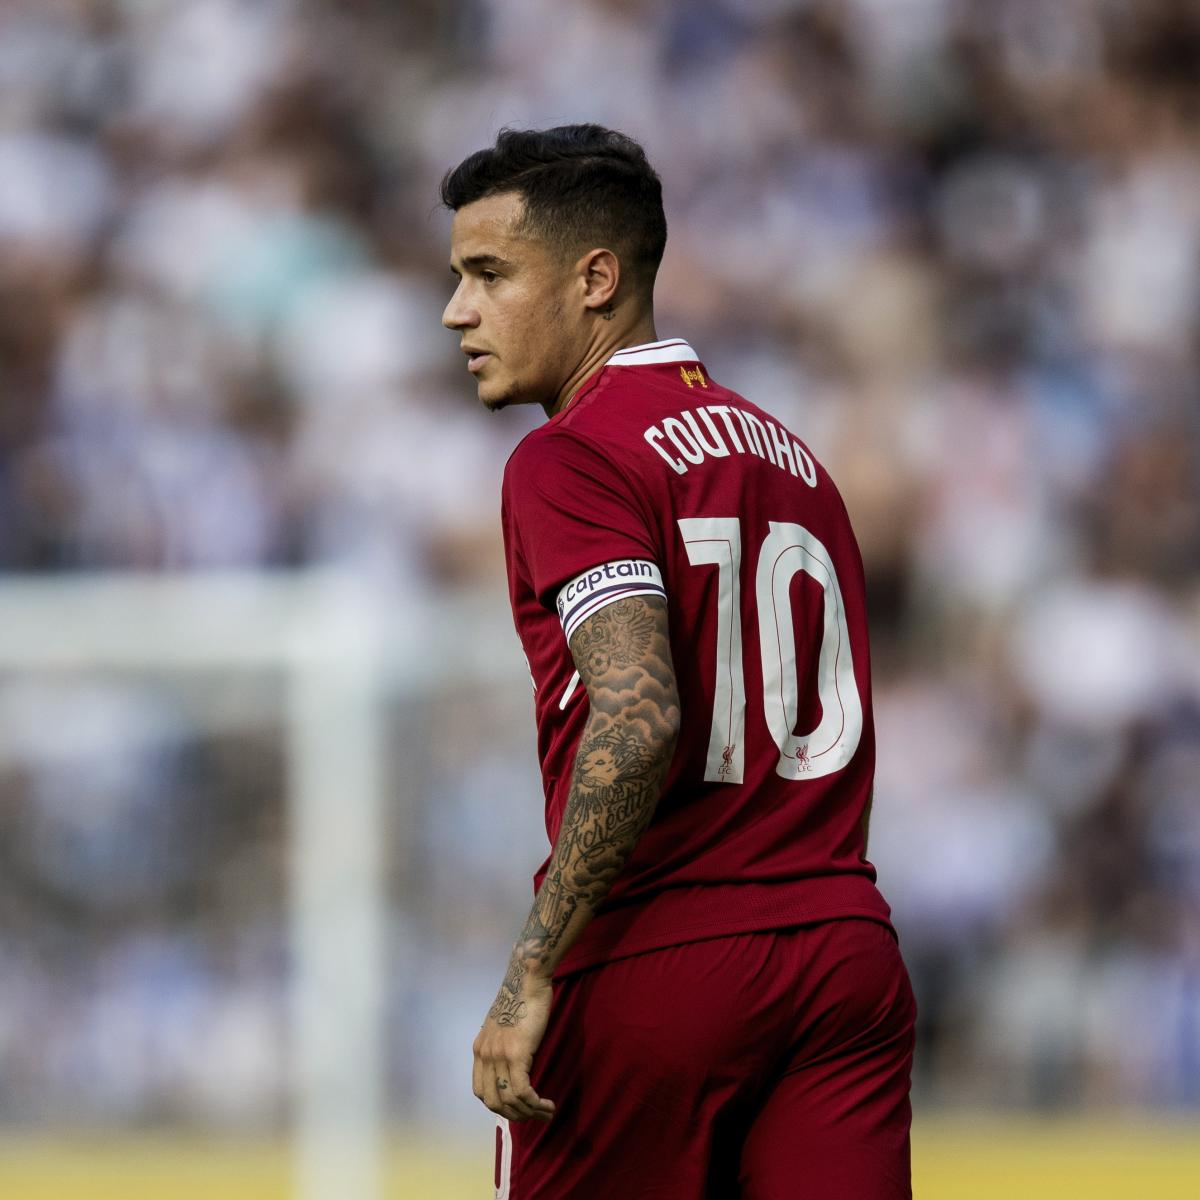 Liverpool Fc Transfer Gossip Reds Close In On Barcelona: Barcelona Transfer News: Latest On Philippe Coutinho